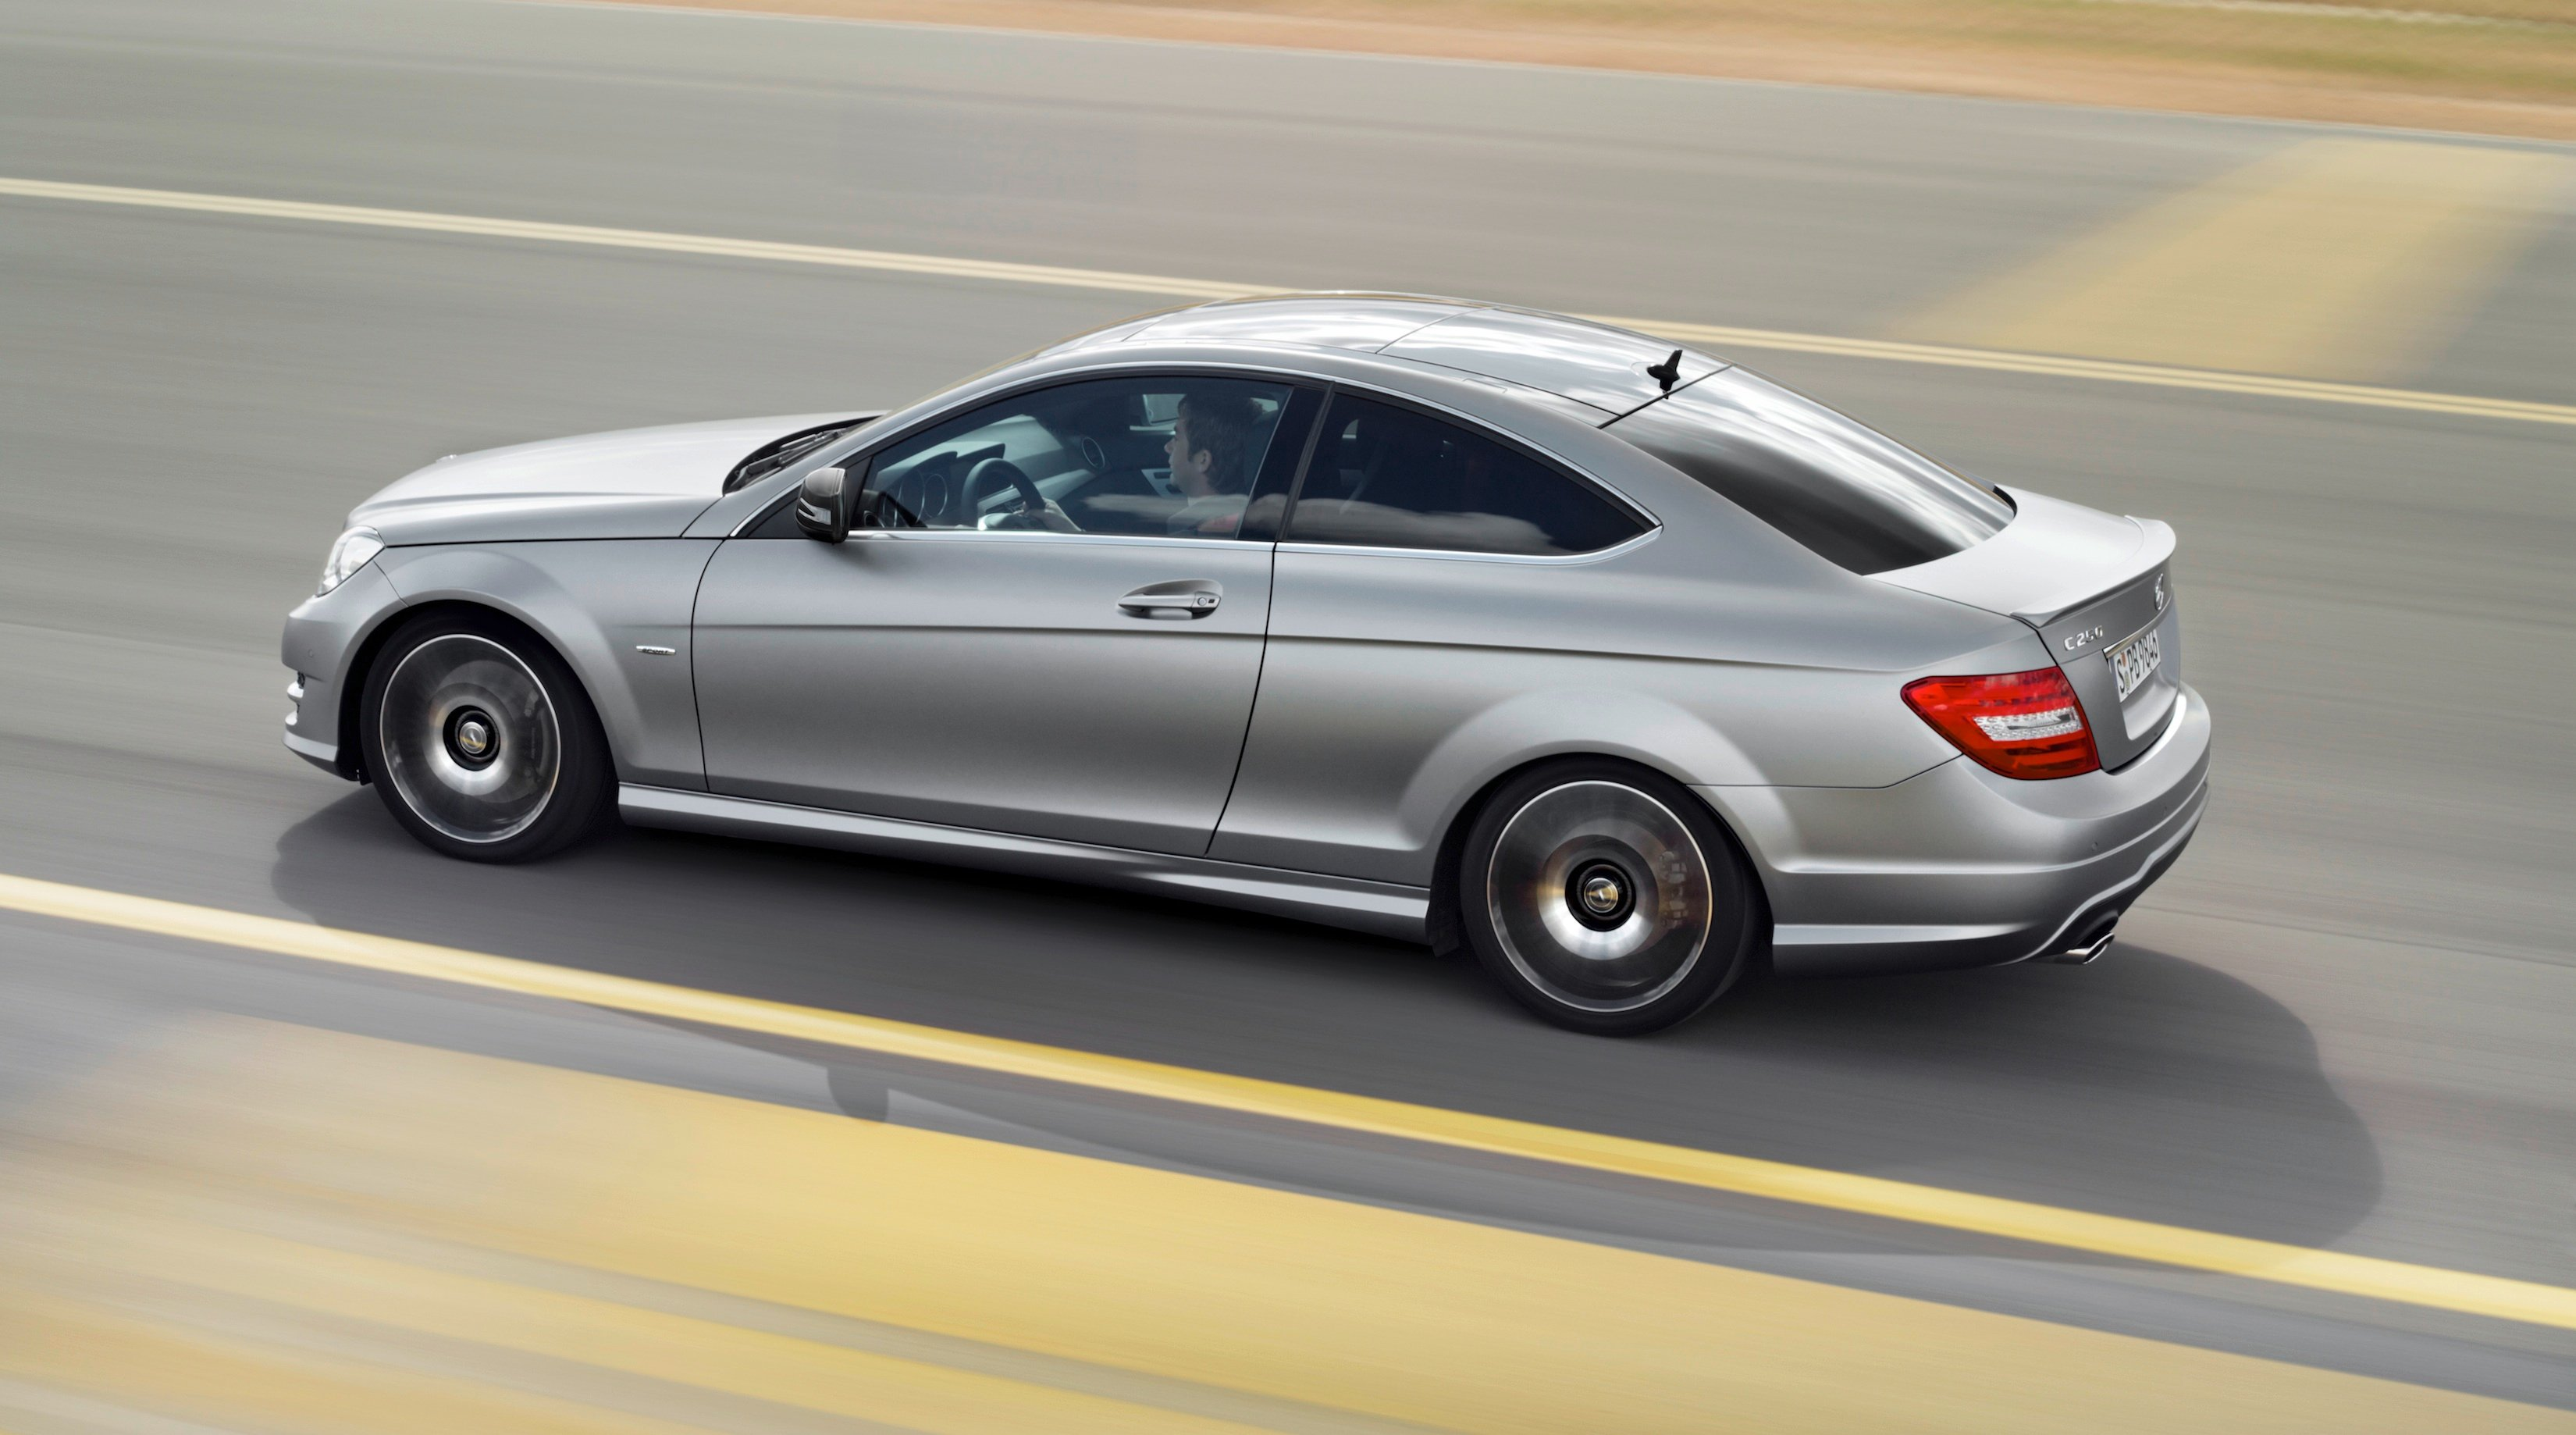 Mercedes benz c250 coupe sport adds amg visuals and for Mercedes benz c 250